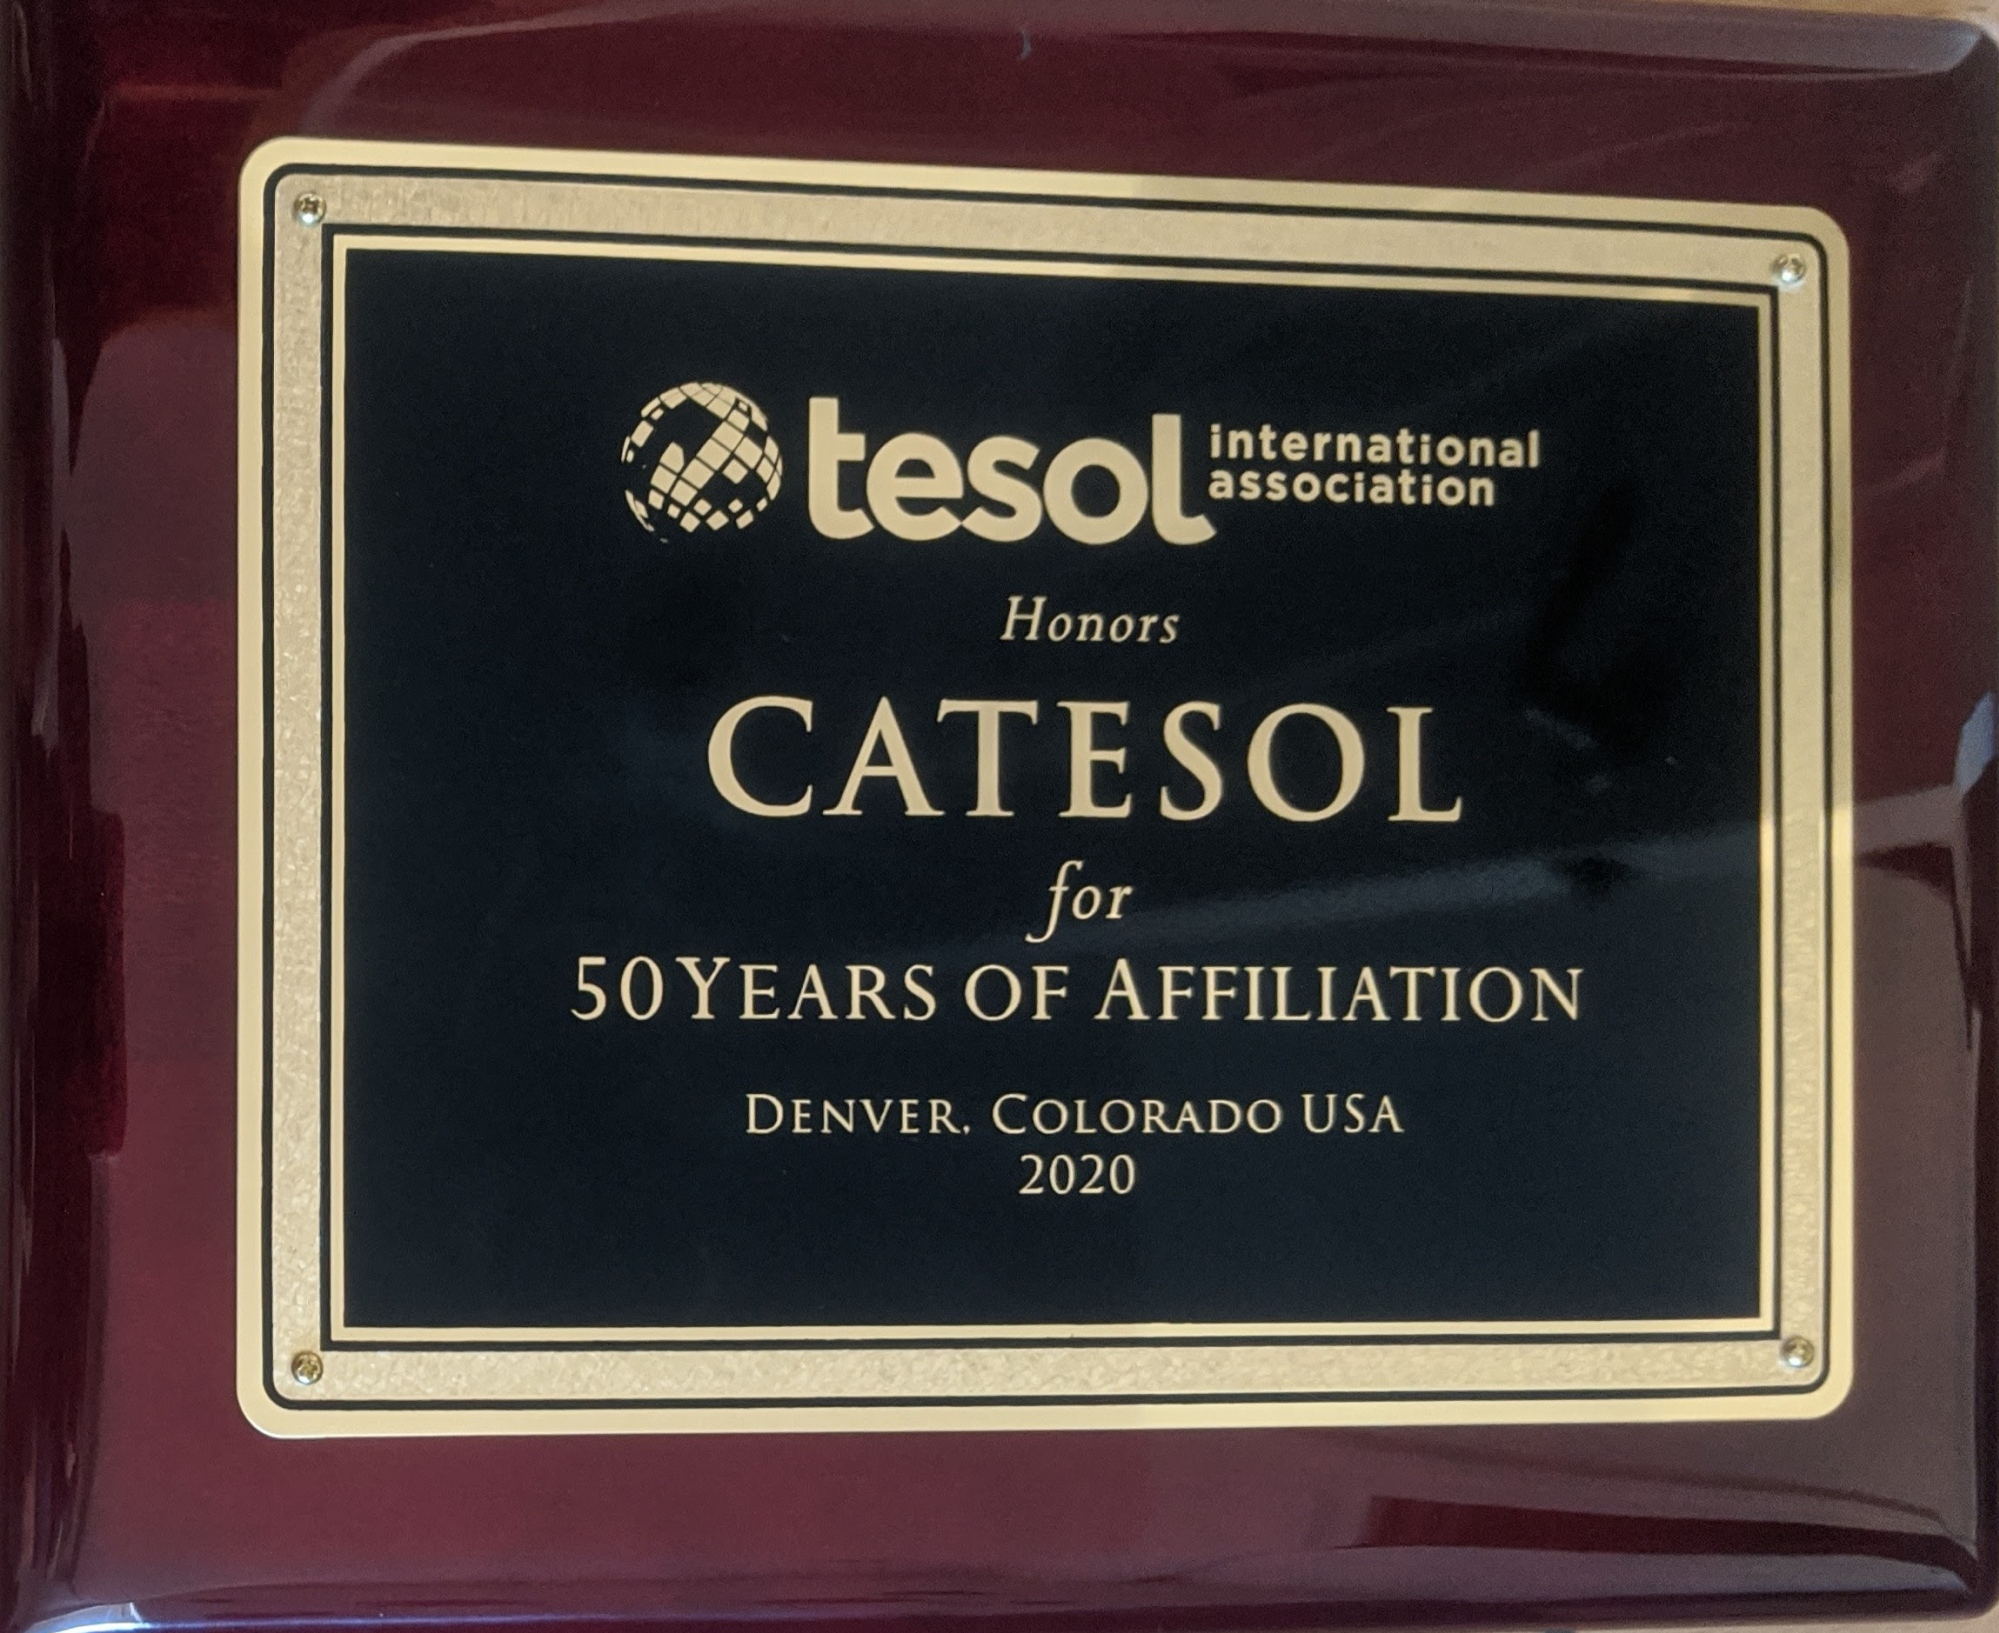 CATESOL plaque 50 years of affiliation